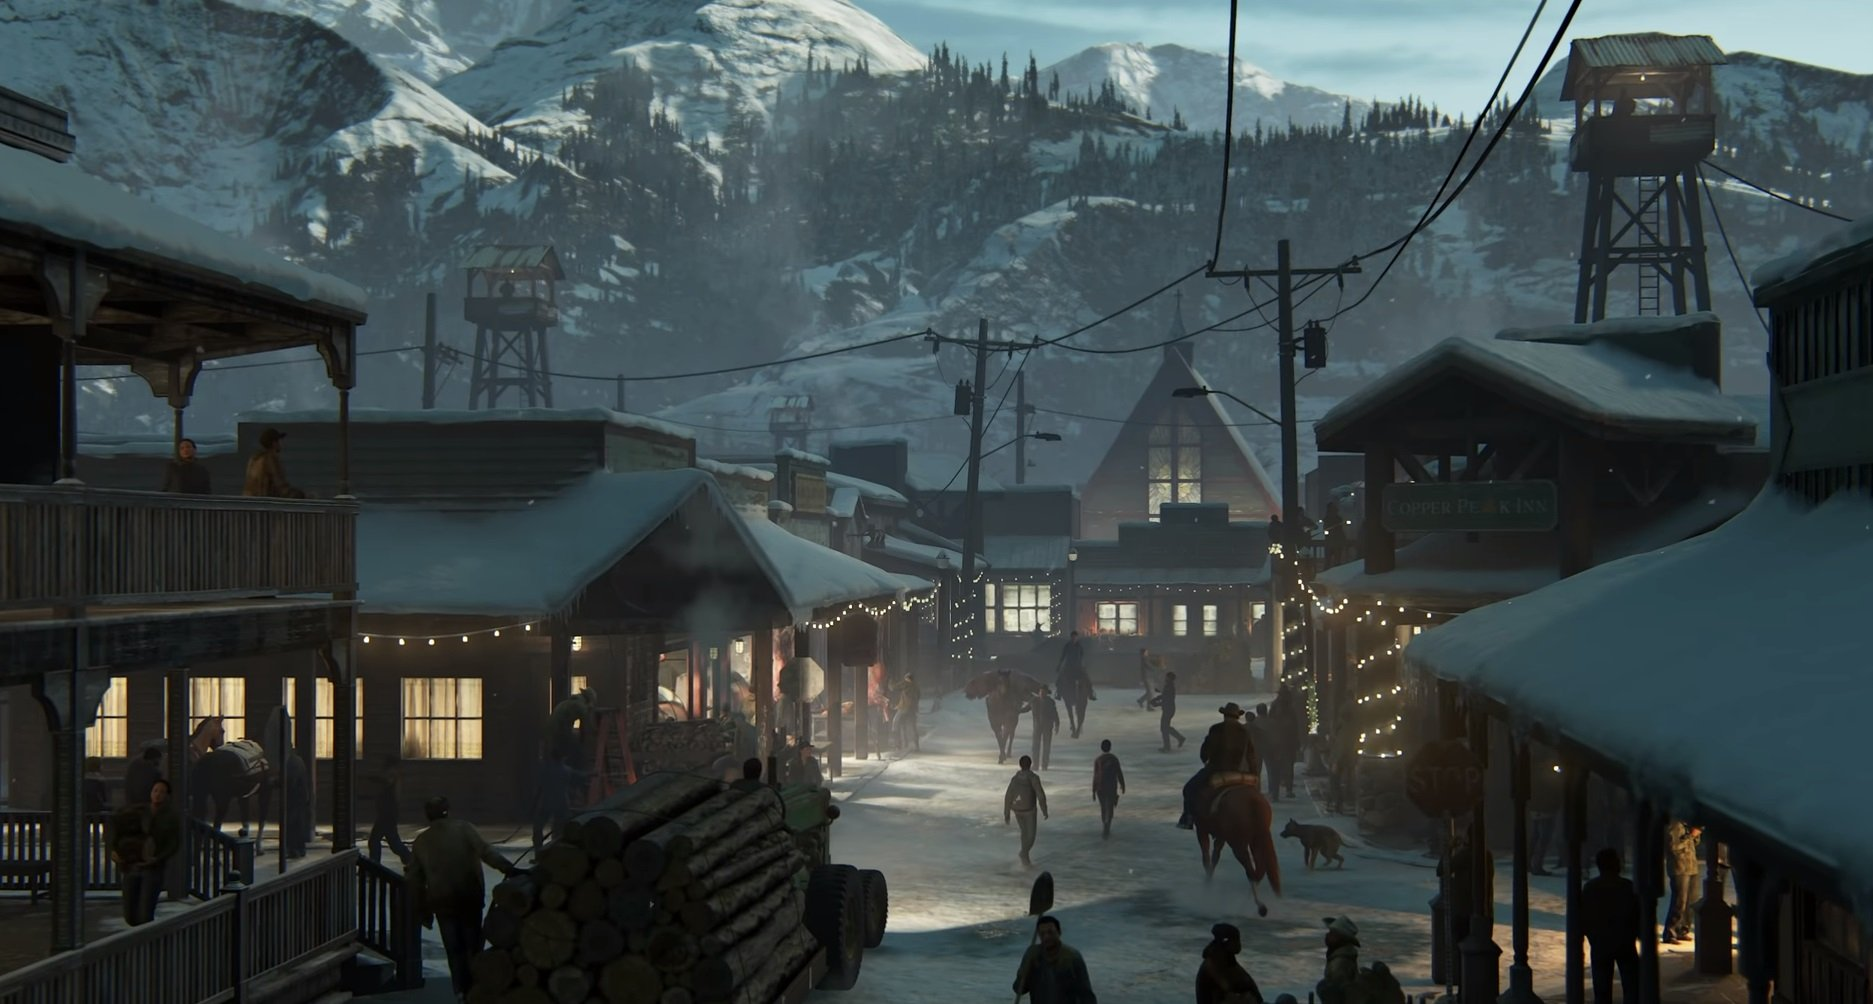 A town is shown in the trailer that may serve as an early base of operations in The Last of Us Part II.